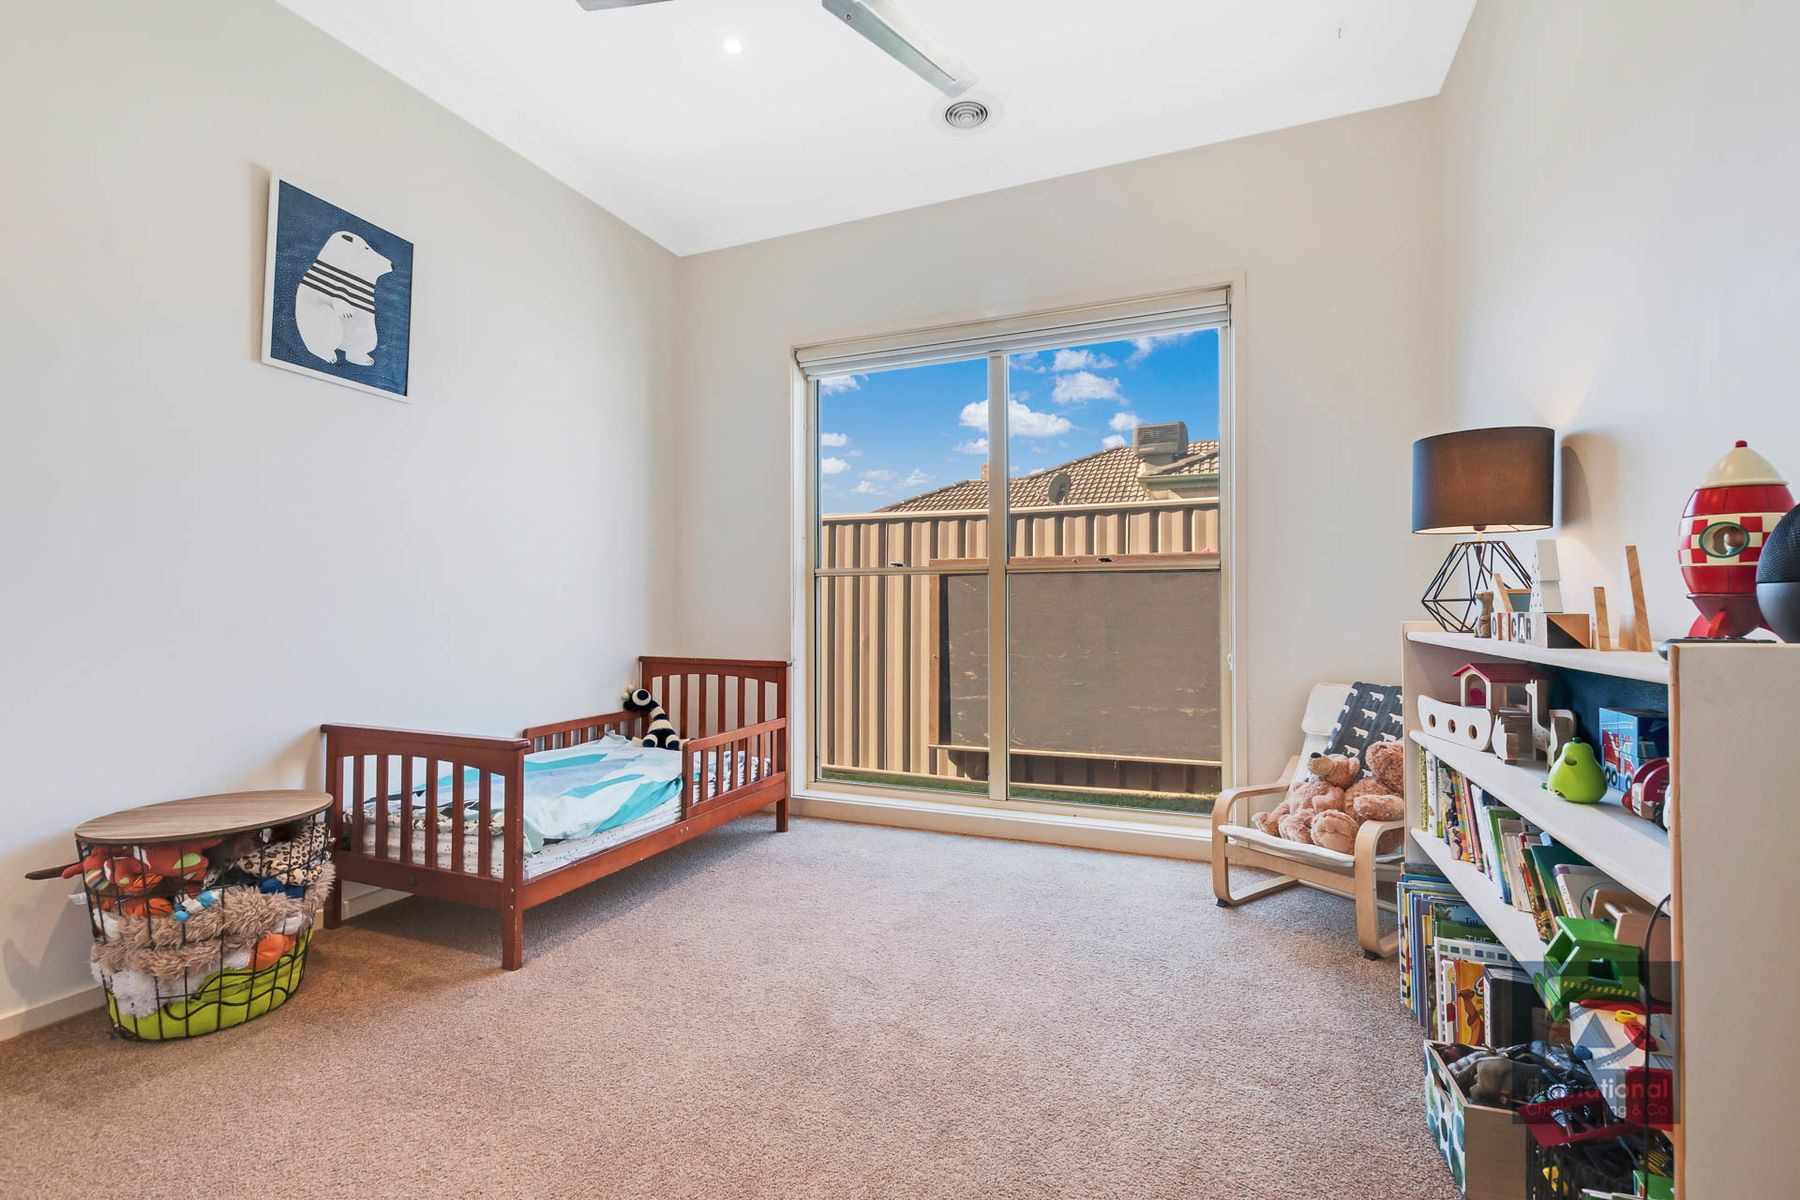 2/67 Mitchell Street, Echuca, VIC 3564